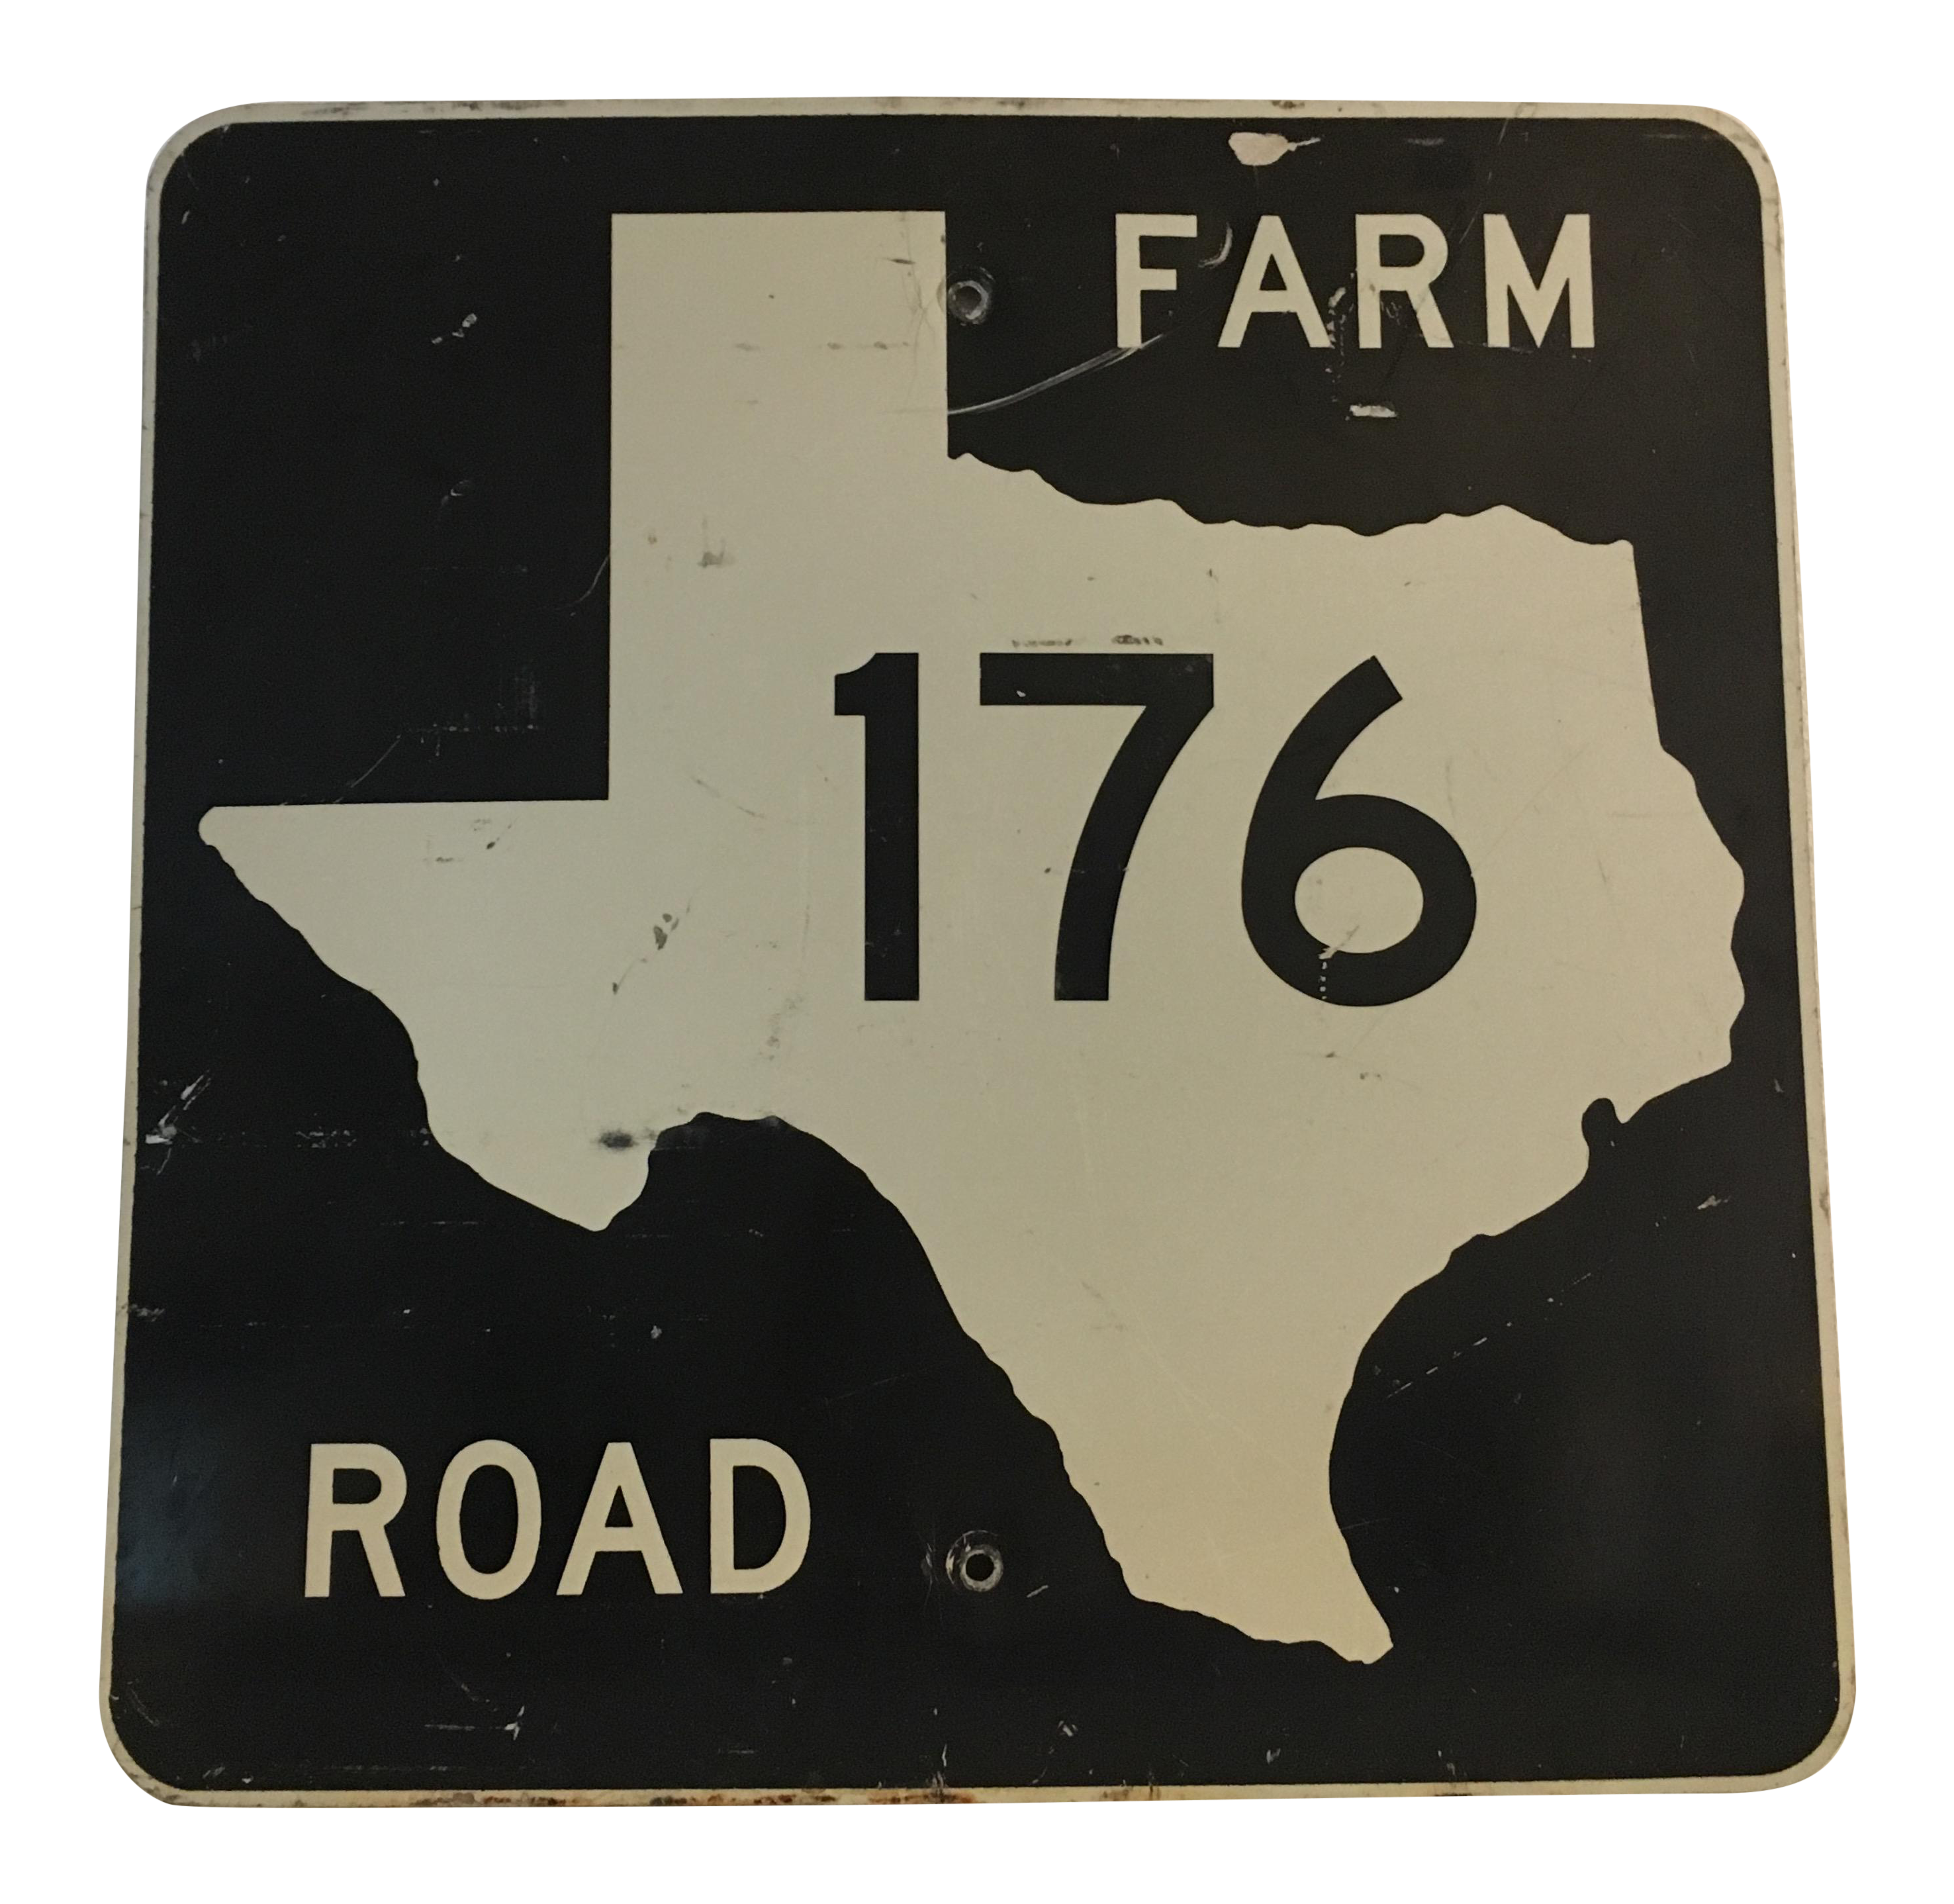 Vintage Texas Farm Road Sign  Chairish. Sea Turtle Signs Of Stroke. Angry Cartoon Decals. Community Signs Of Stroke. Where To Buy New Vinyl Records. Change Signs. Gum Signs. Clot Signs Of Stroke. Cross Legs Signs